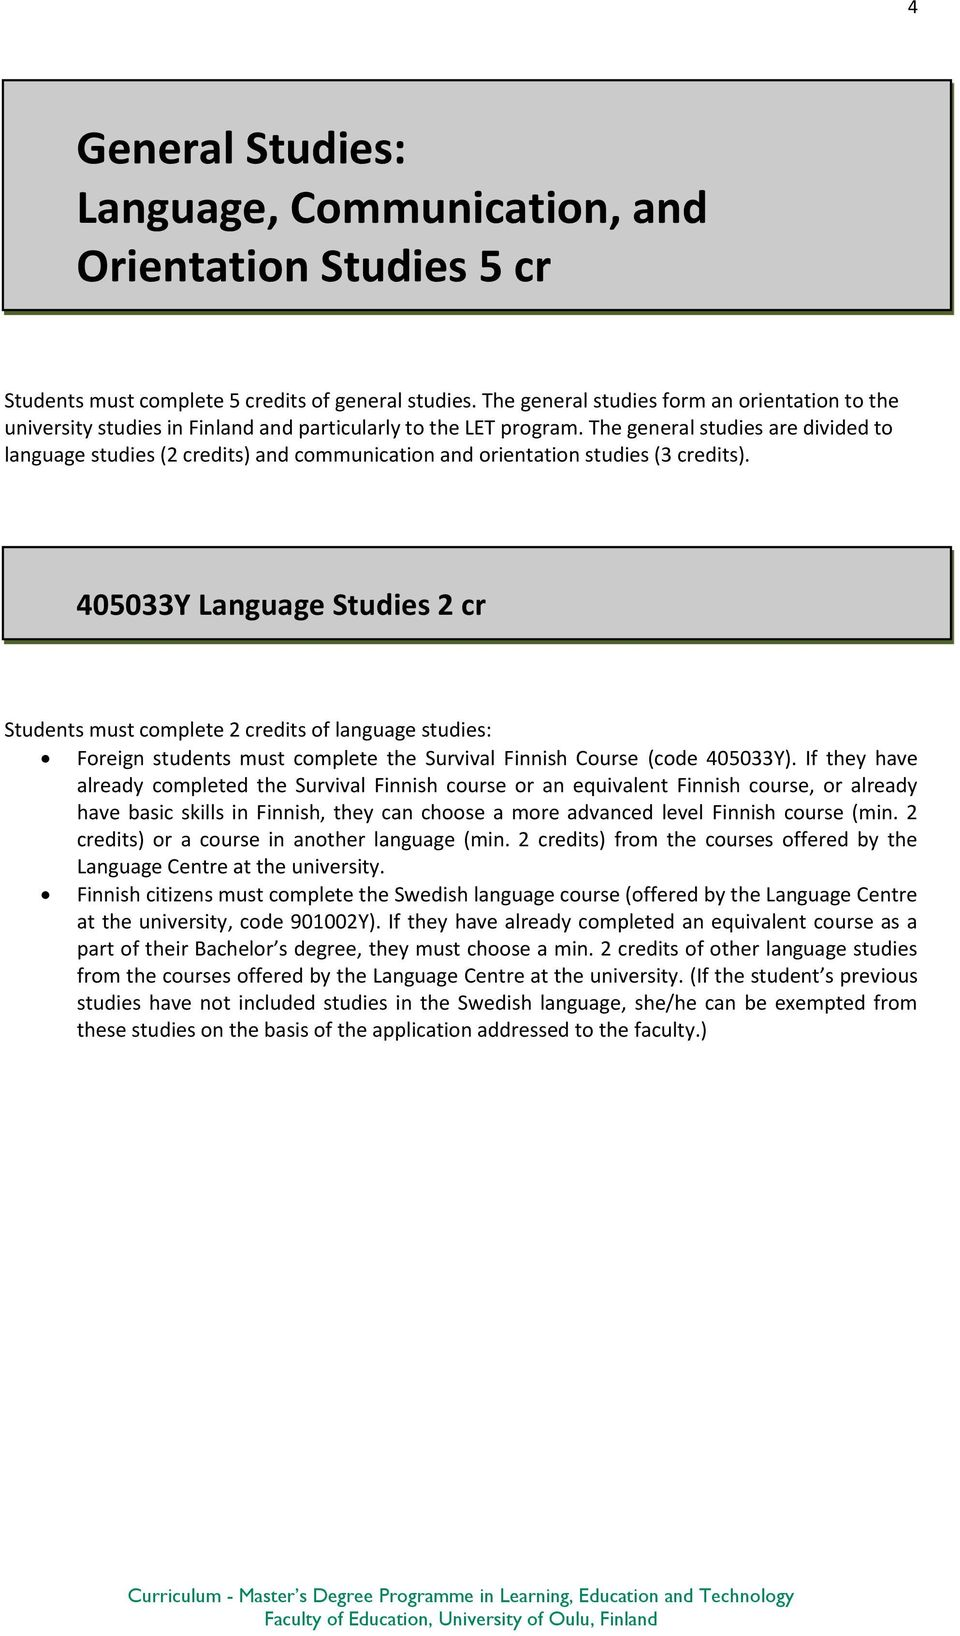 The general studies are divided to language studies (2 credits) and communication and orientation studies (3 credits).